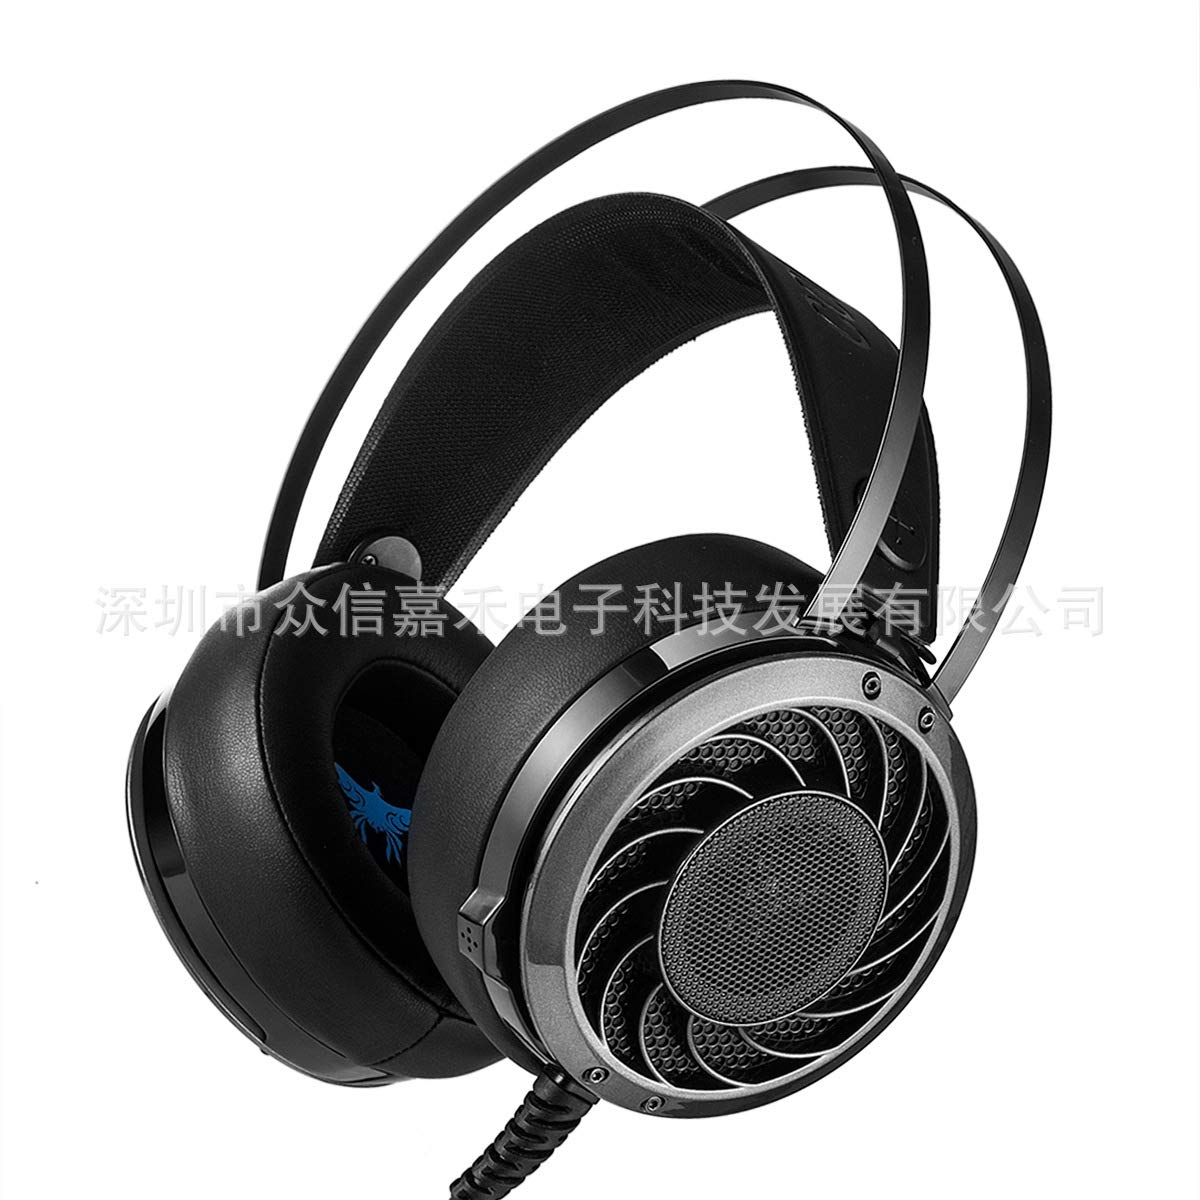 Gaming Headset,M160 Over-Ear Headphone,Stereo Noise Canceling Mic,HiFi Gaming Headphones for PC Computer Game